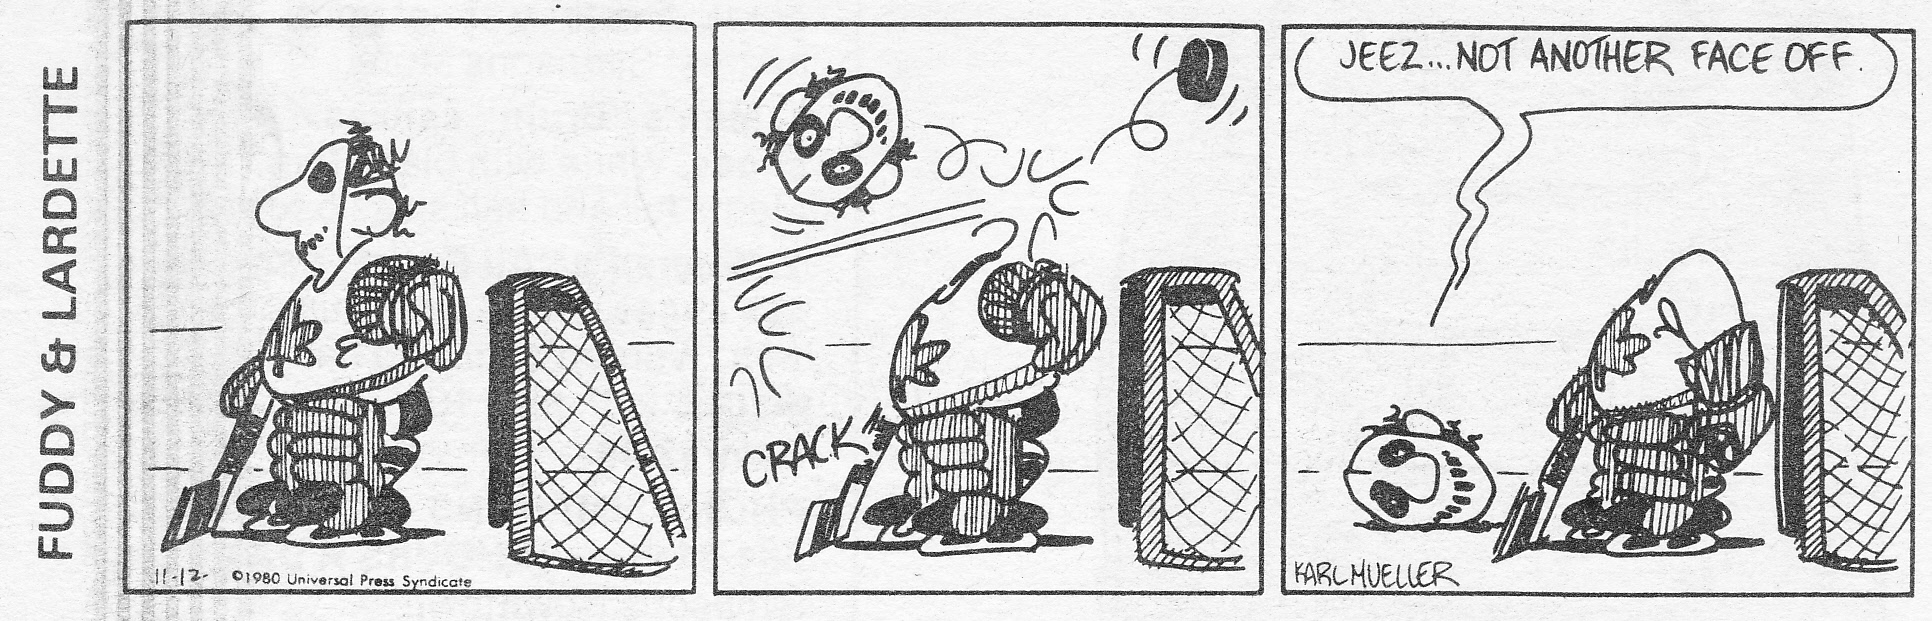 C:\Users\Robert\Documents\CARTOONING ILLUSTRATION ANIMATION\IMAGE CARTOON\IMAGE CARTOON F\FUDDY& LARDETTE, Toronto Sun, 12 November 1980.jpg